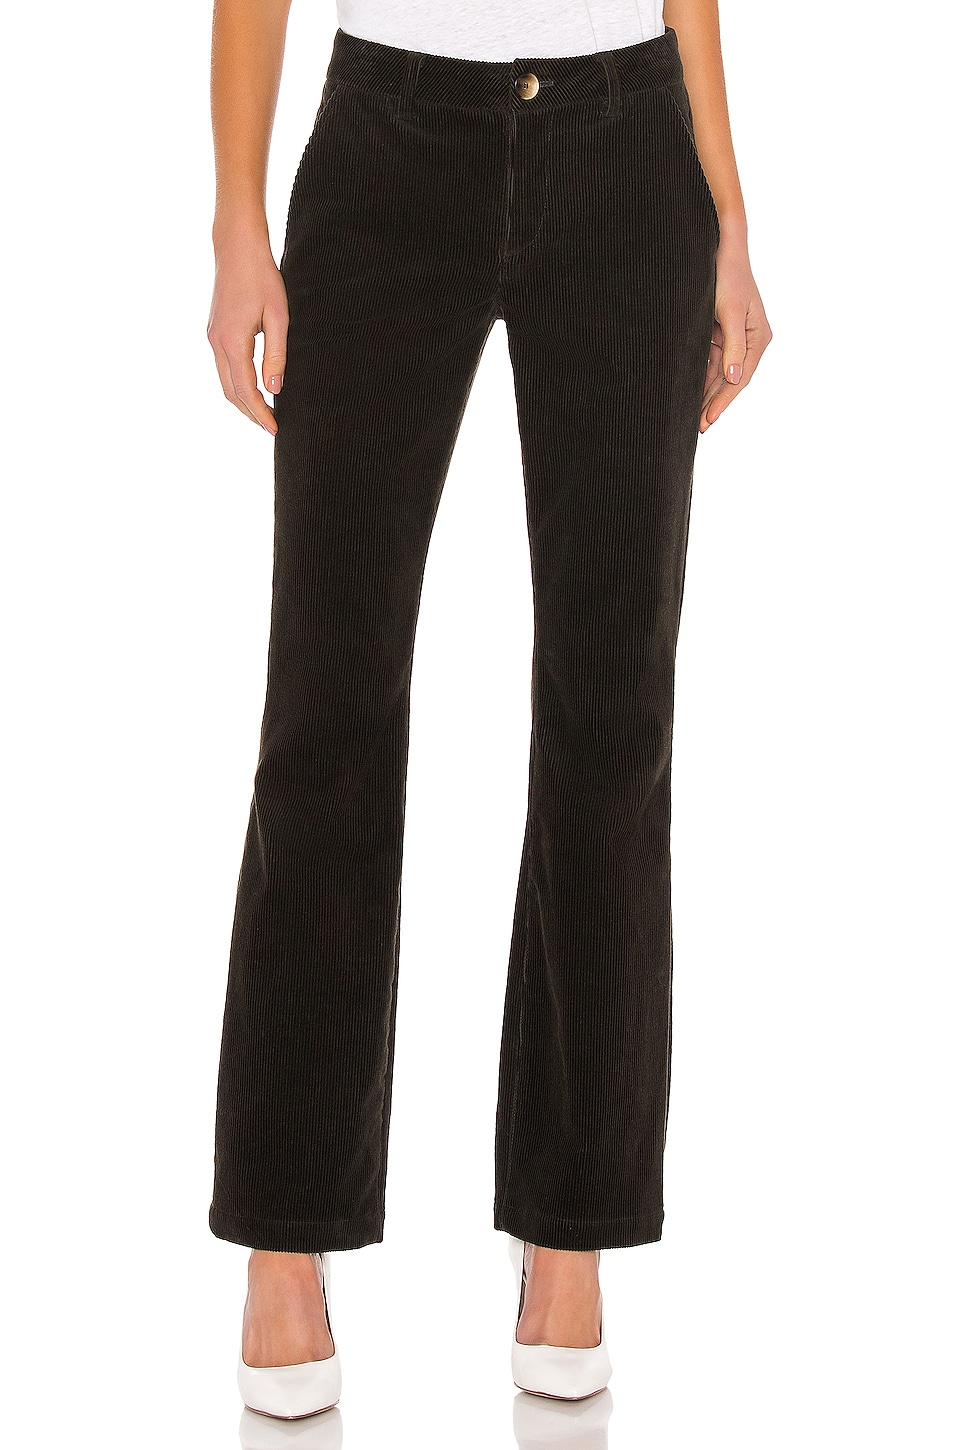 TRAVE Sloan Corduroy Pant in Green River